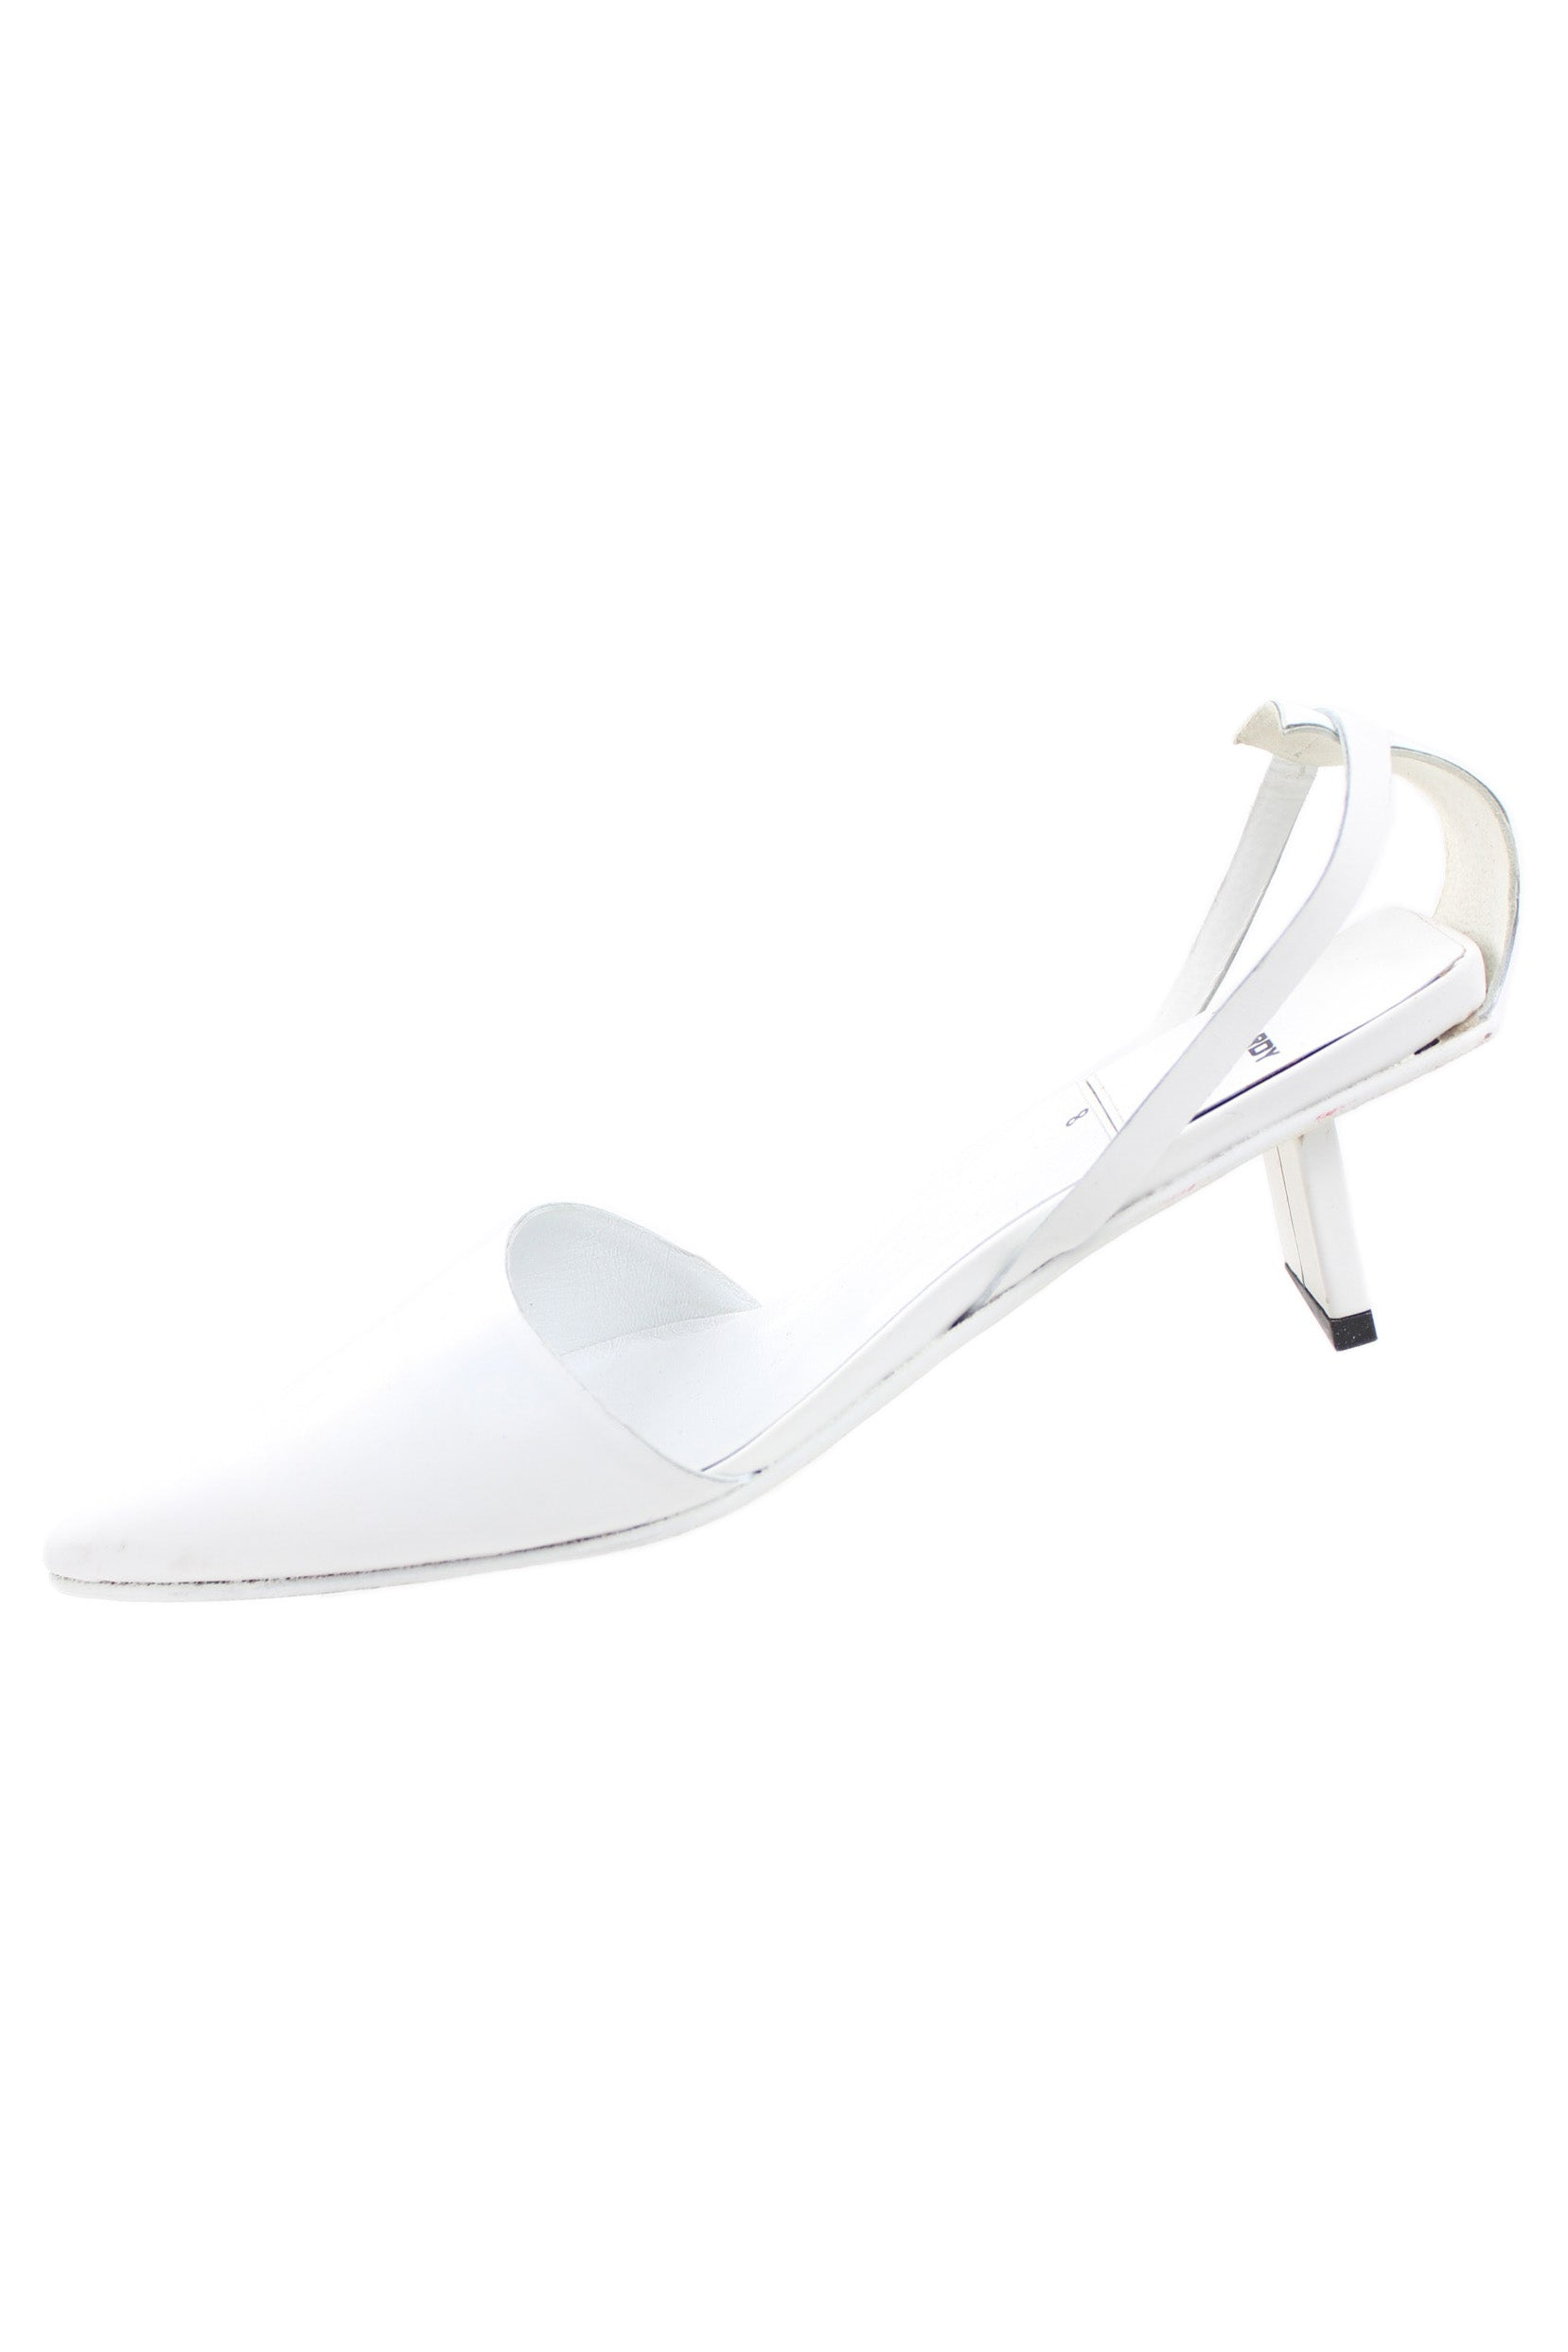 pierre hardy white pointed toe kitten heels. features geometric heel and cutout sling back.